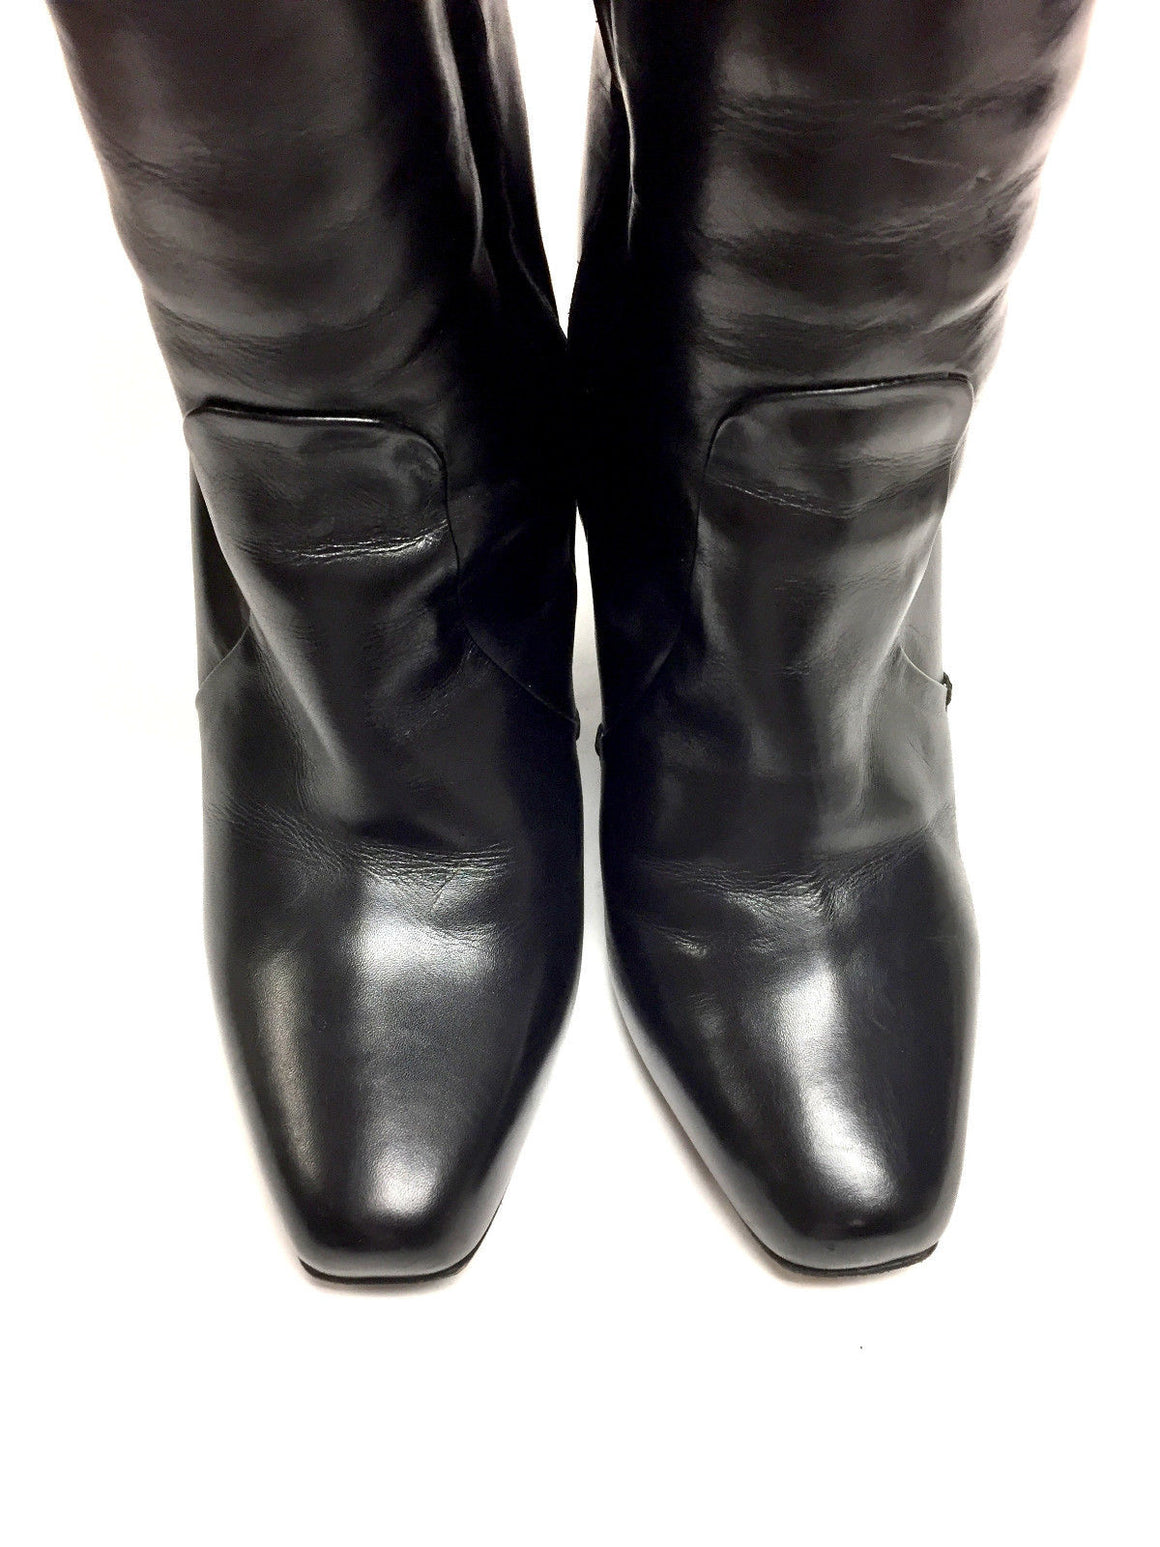 bisbiz.com CALVIN KLEIN COLLECTION Black Leather Patent Leather Wedge Heels Tall Boots Size: 36/6 - Bis Designer Resale